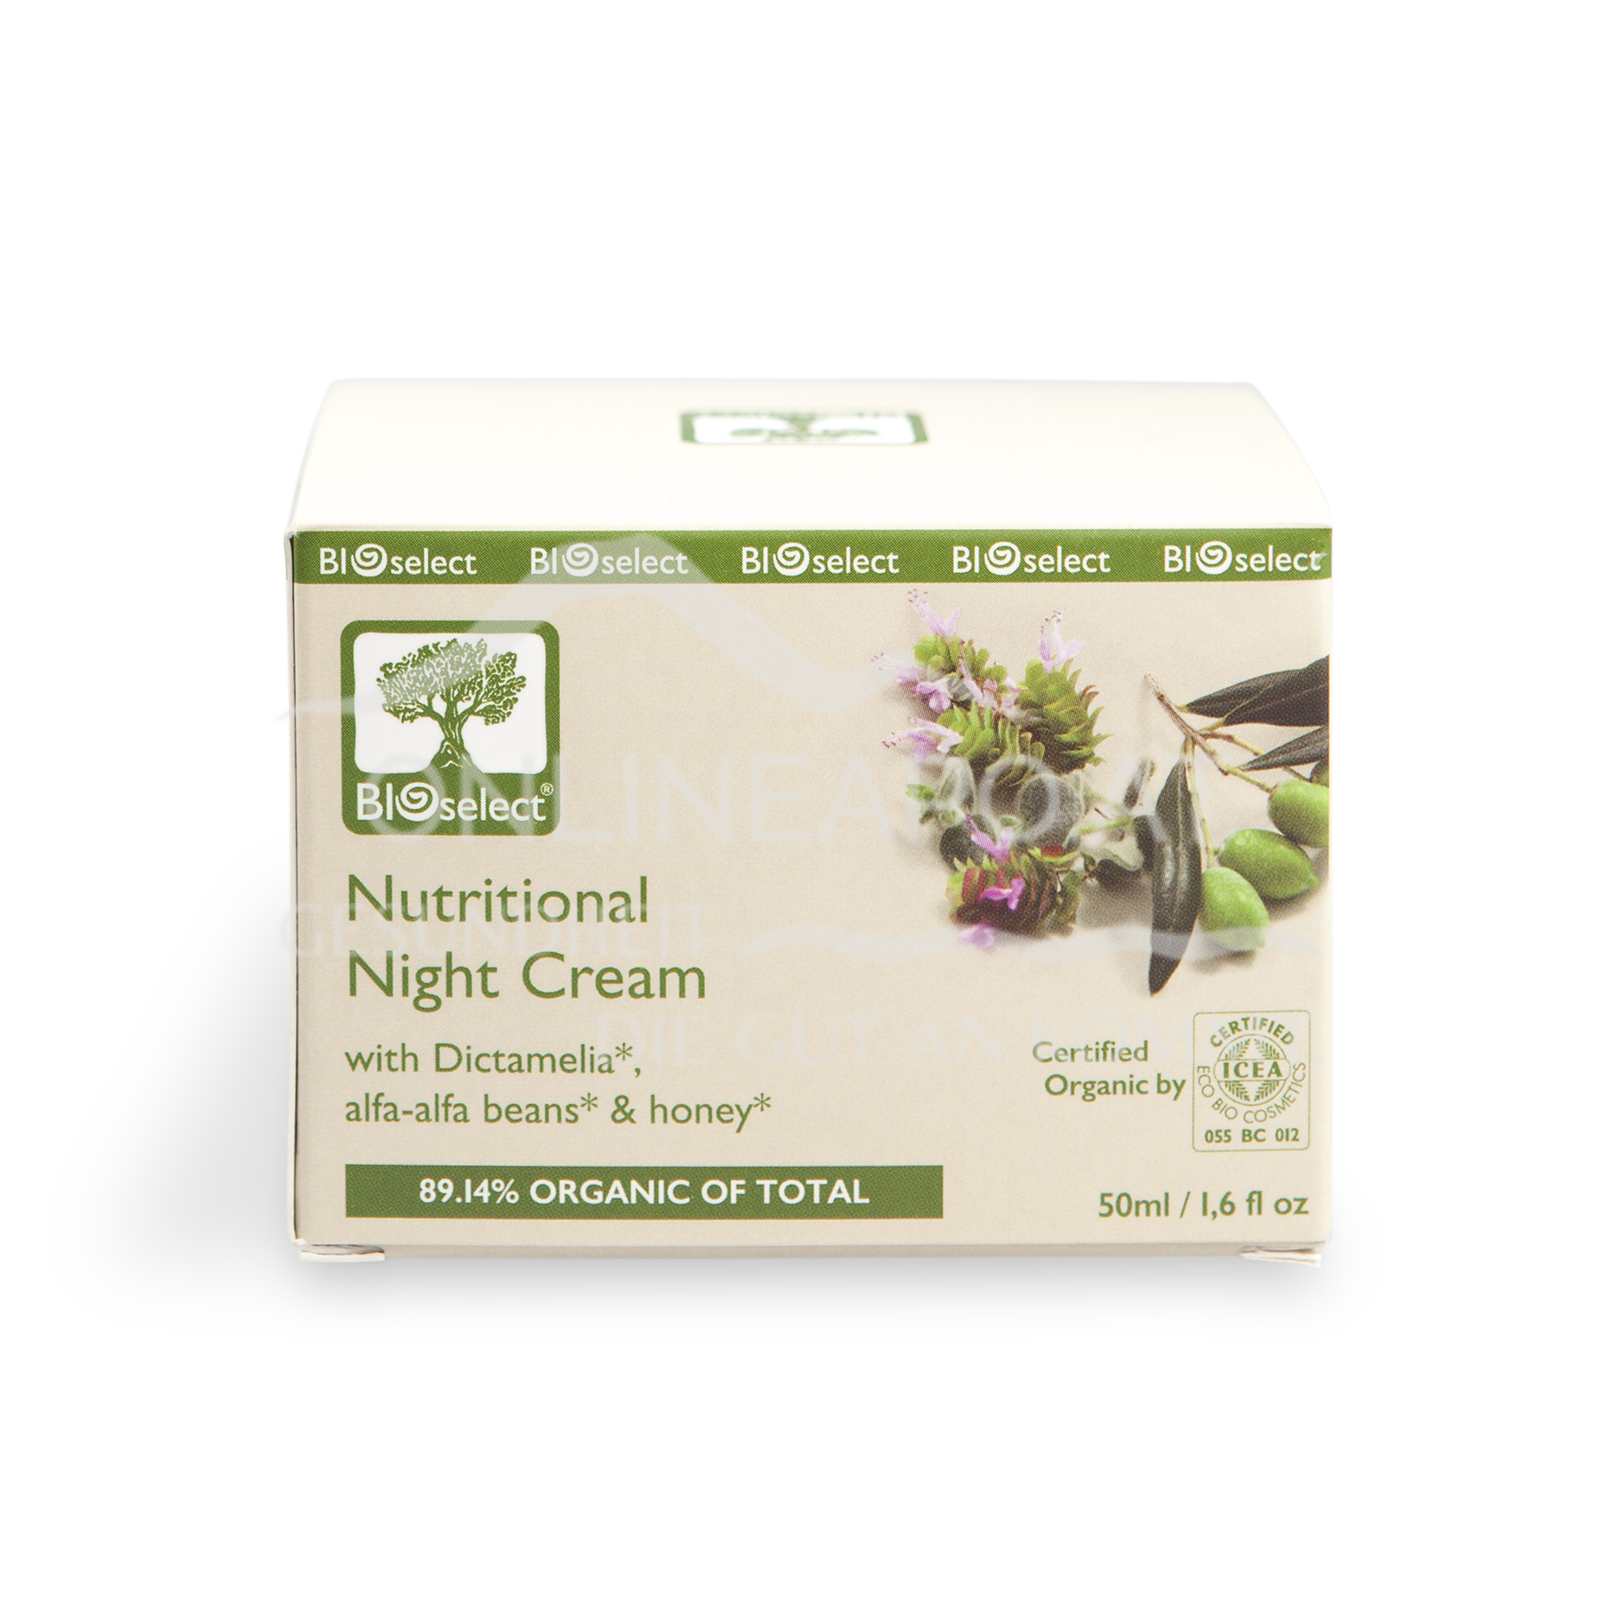 Bioselect Nutritional Night Cream